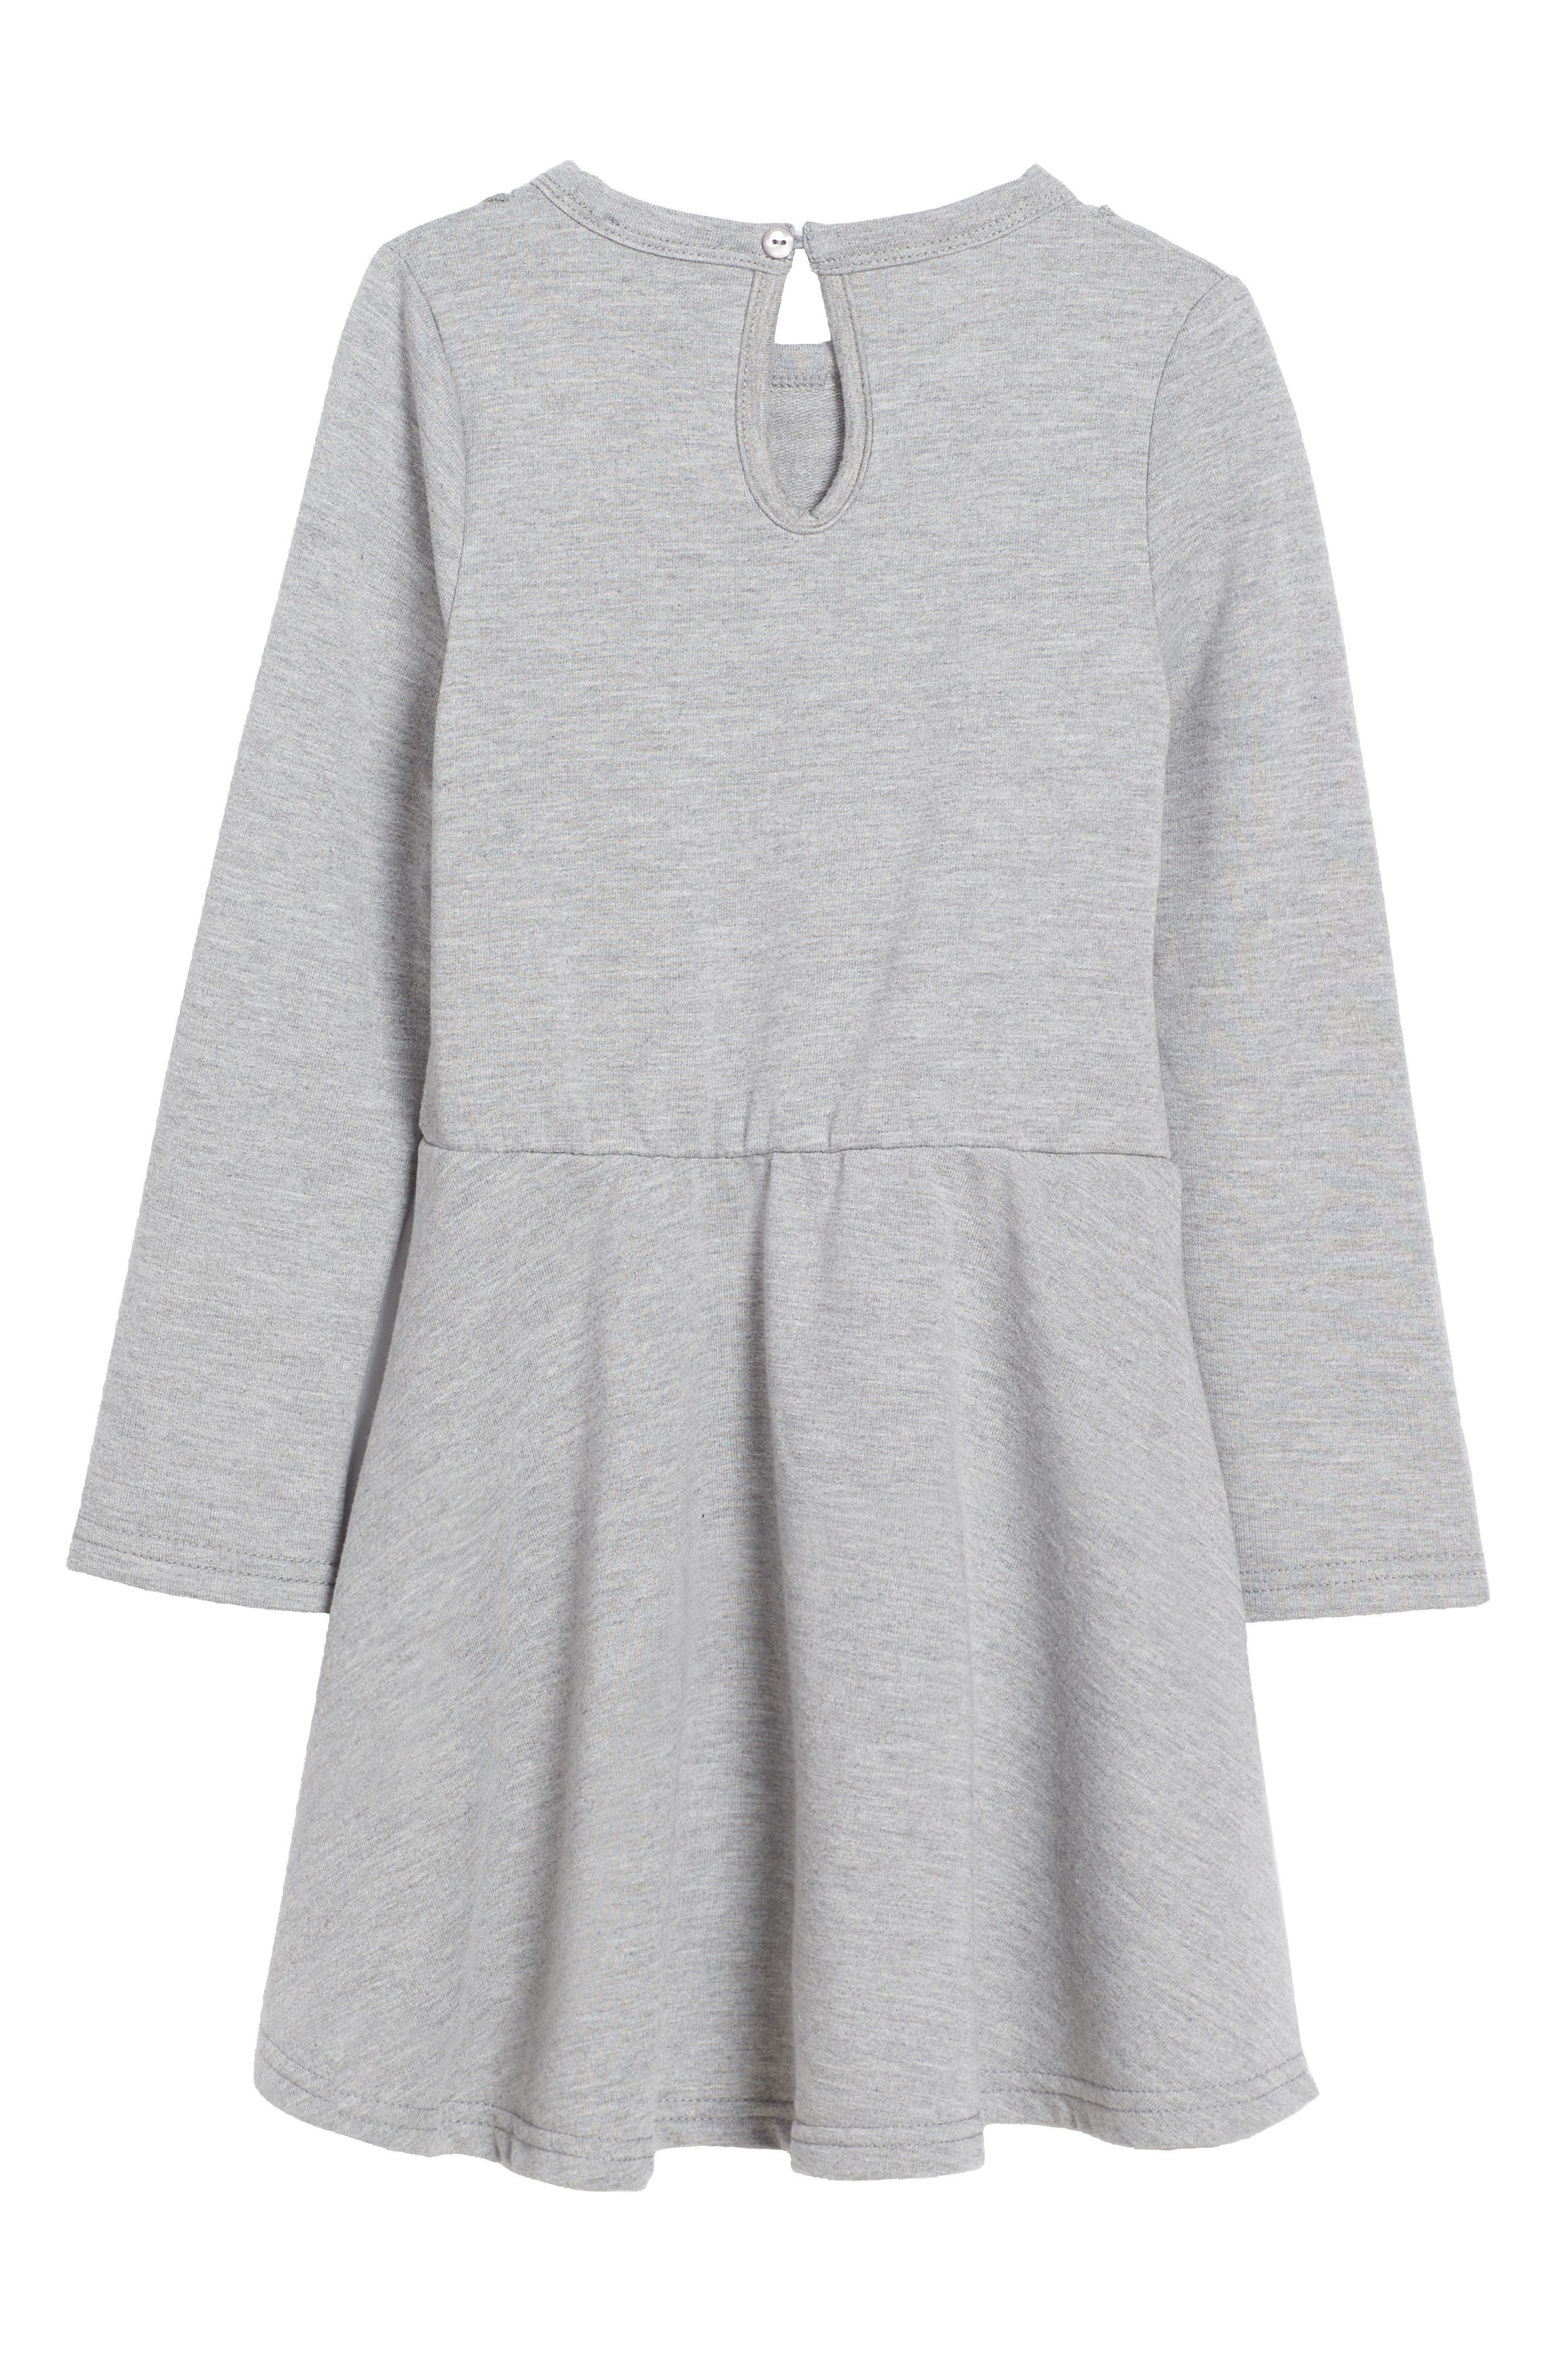 Frill of It Ruffle Dress,                             Alternate thumbnail 2, color,                             Grey Marble